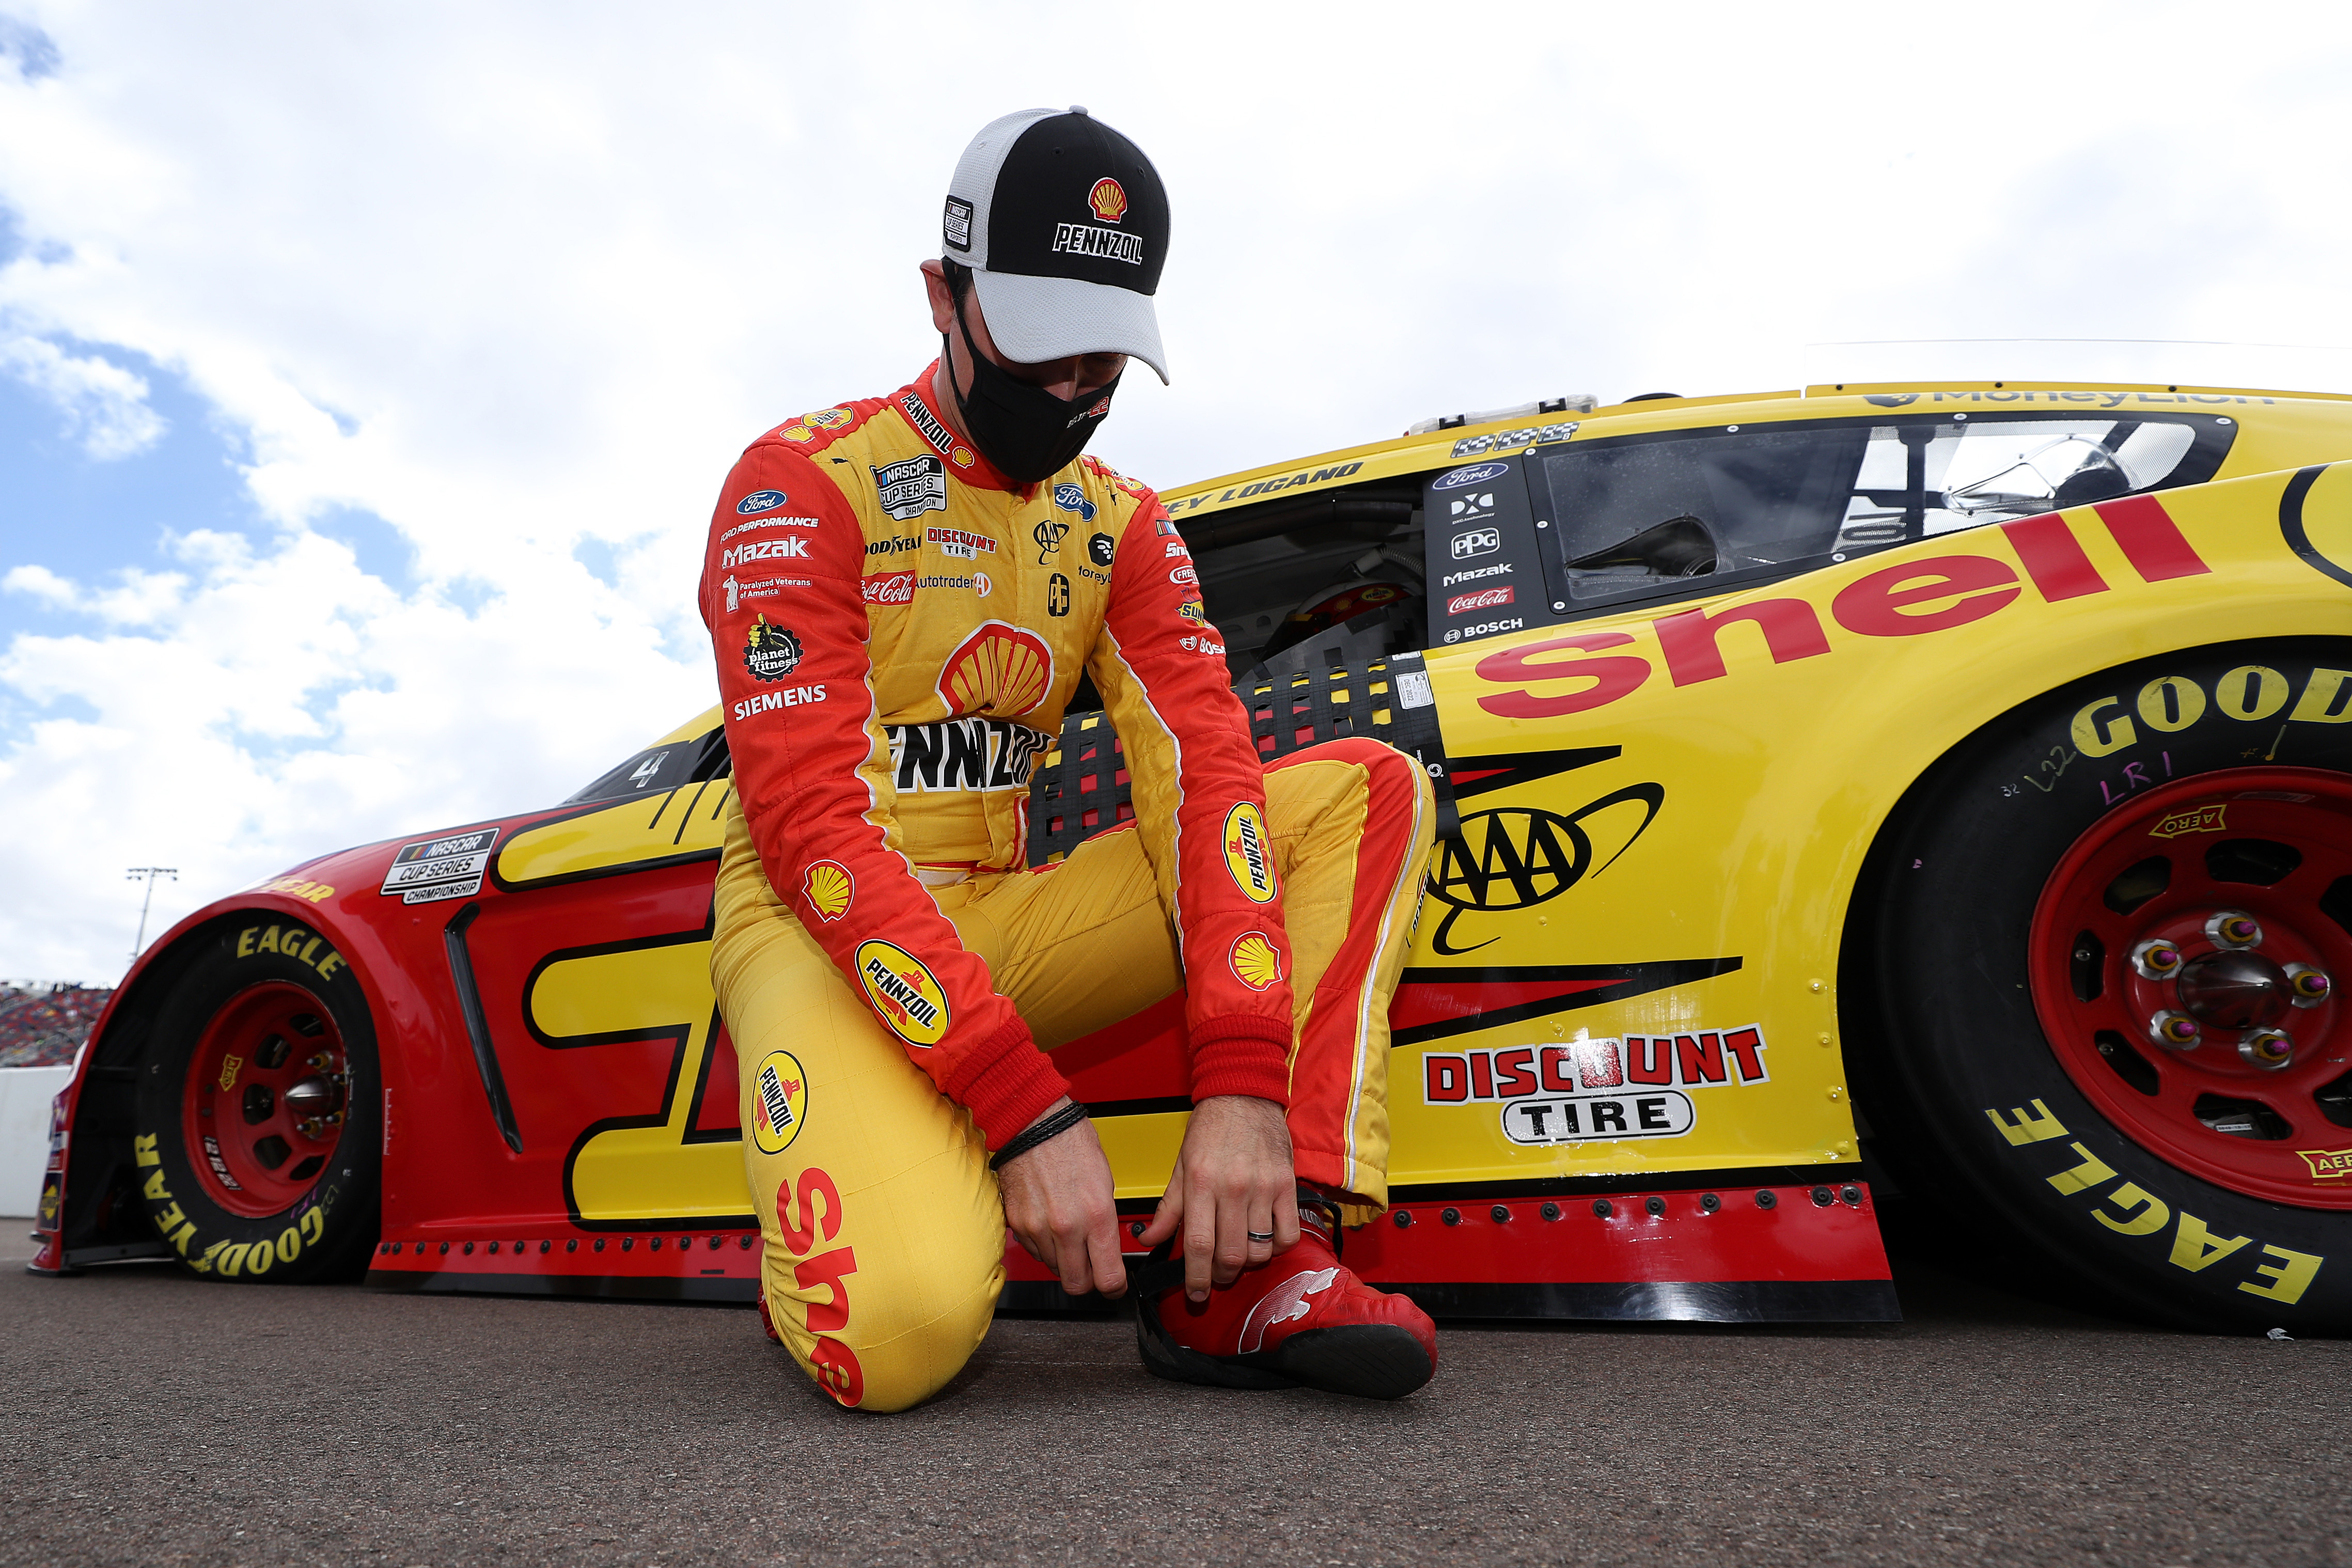 Joey Logano, driver of the #22 Shell Pennzoil Ford, waits on the grid